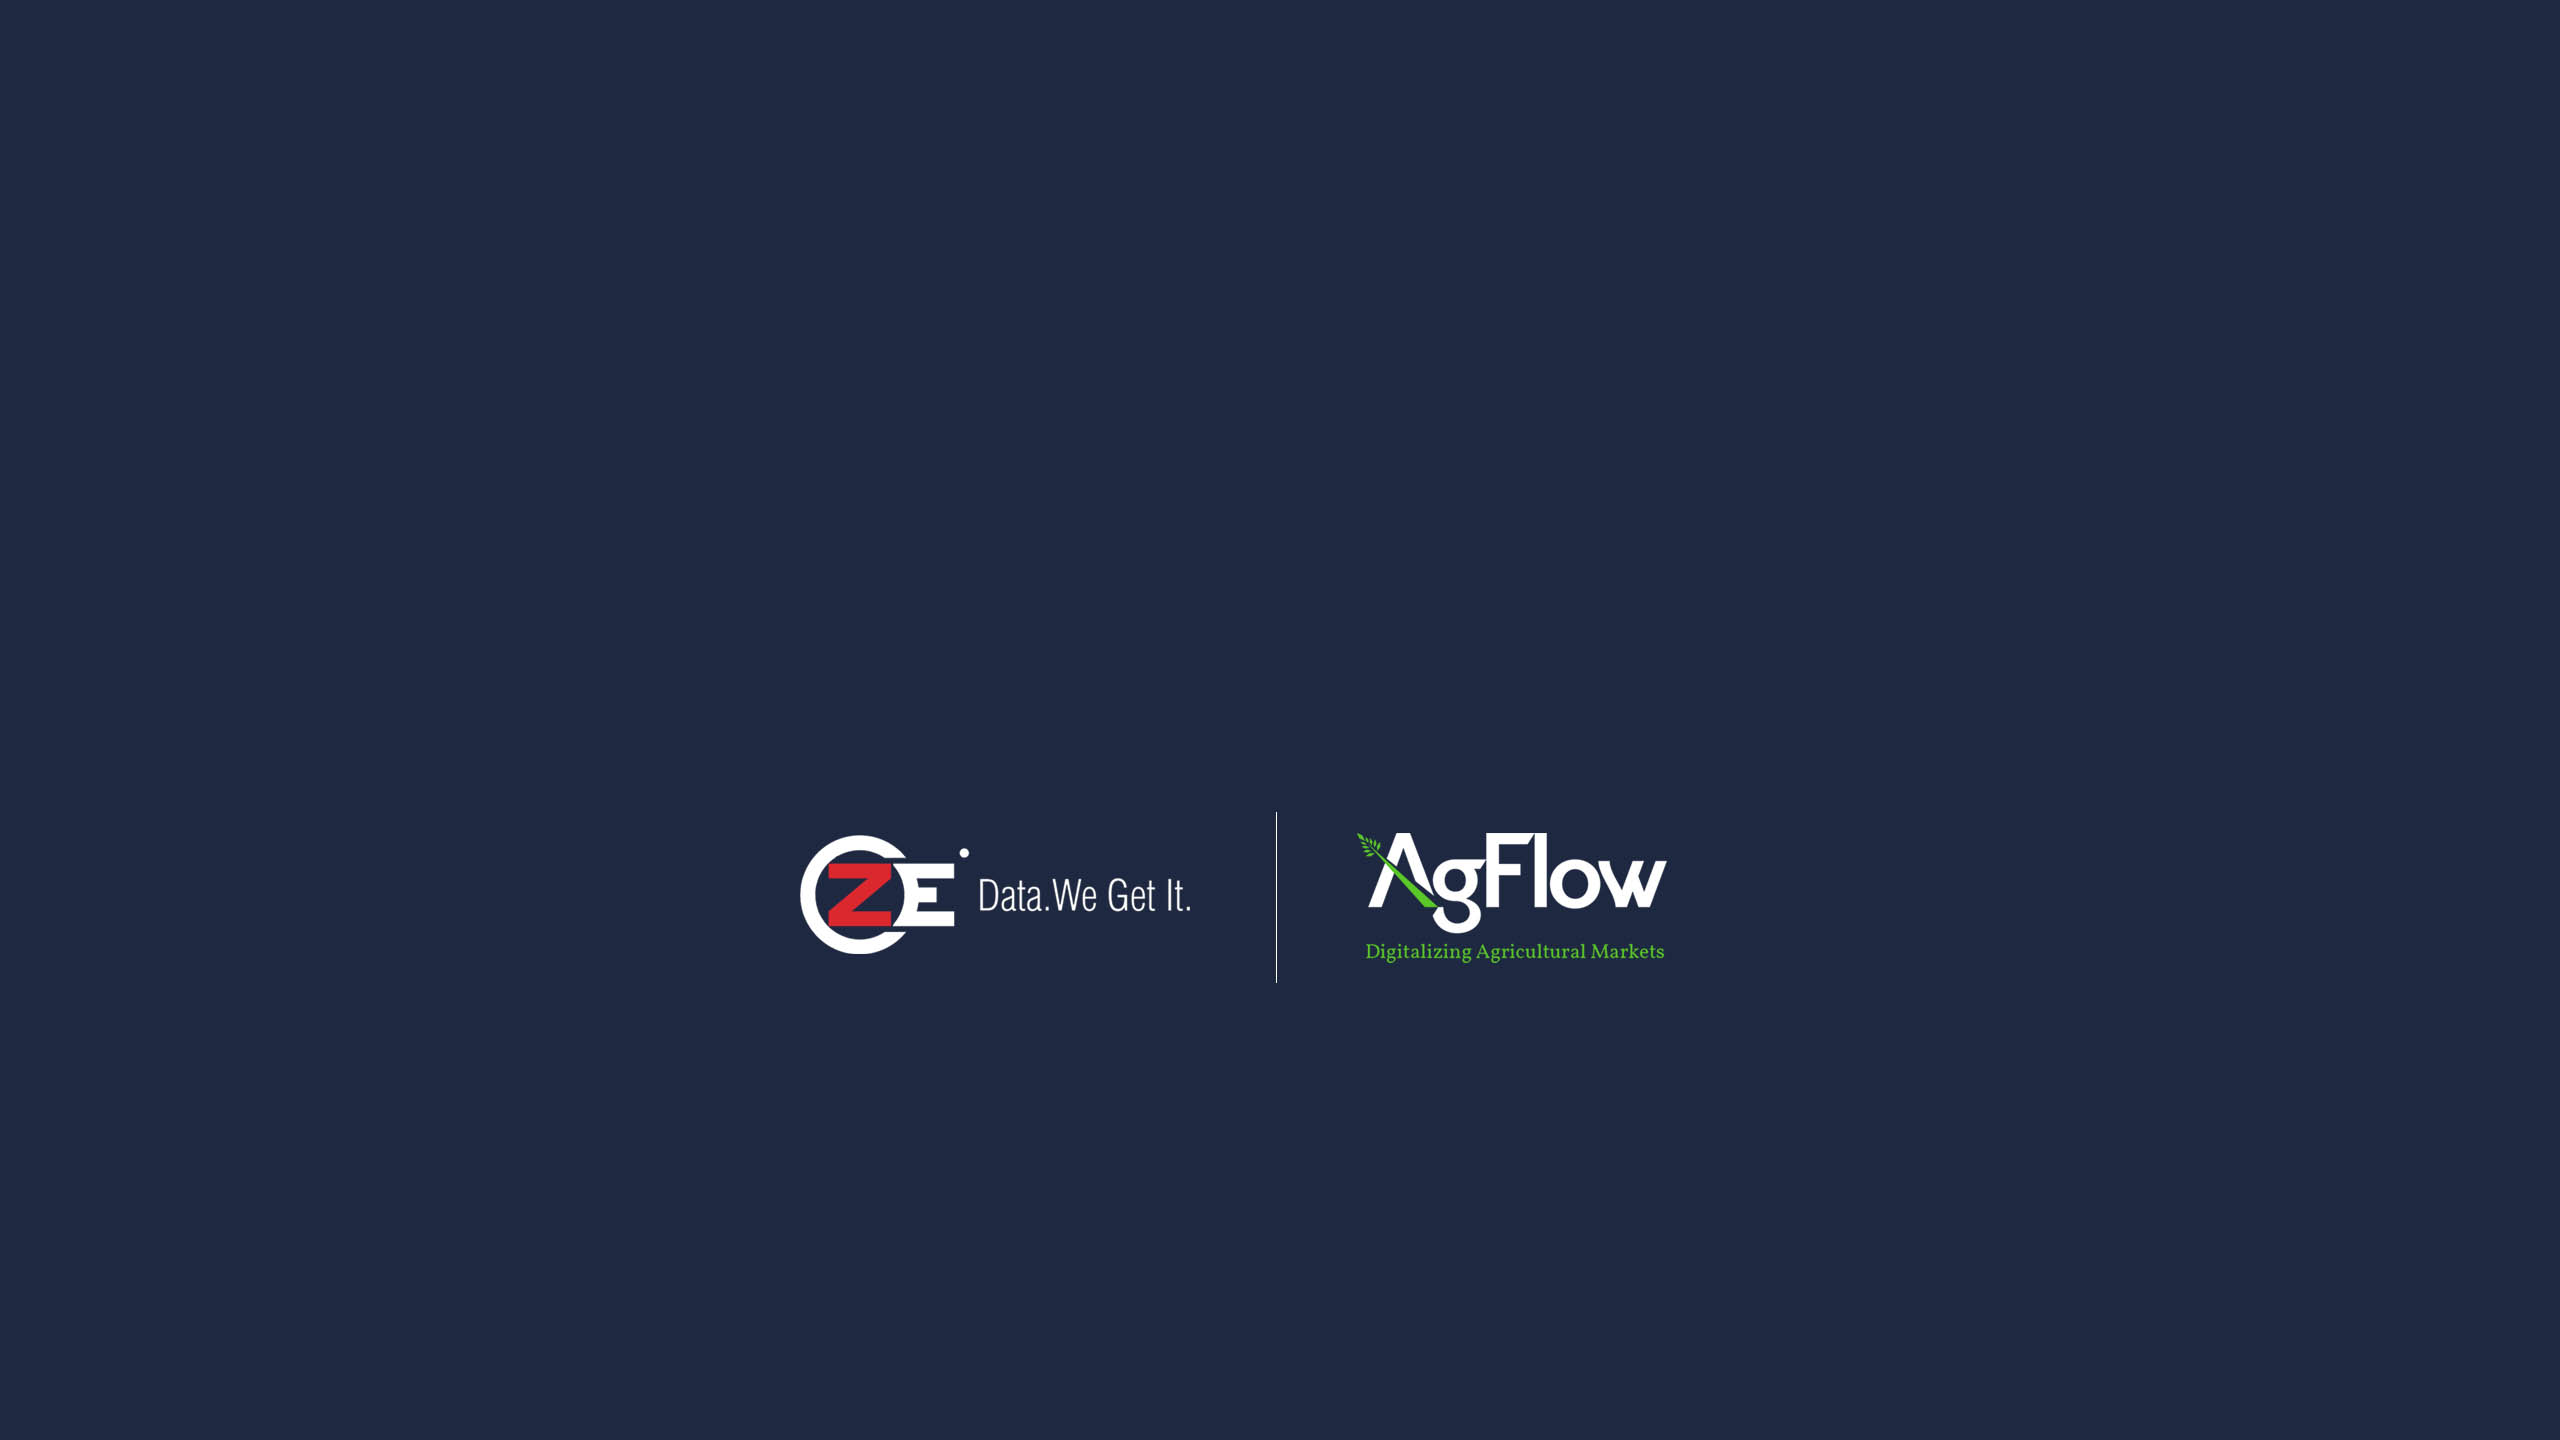 ZE PowerGroup and AgFlow Develop a Partnership to Expand Access to Crucial Agricultural Commodities Data